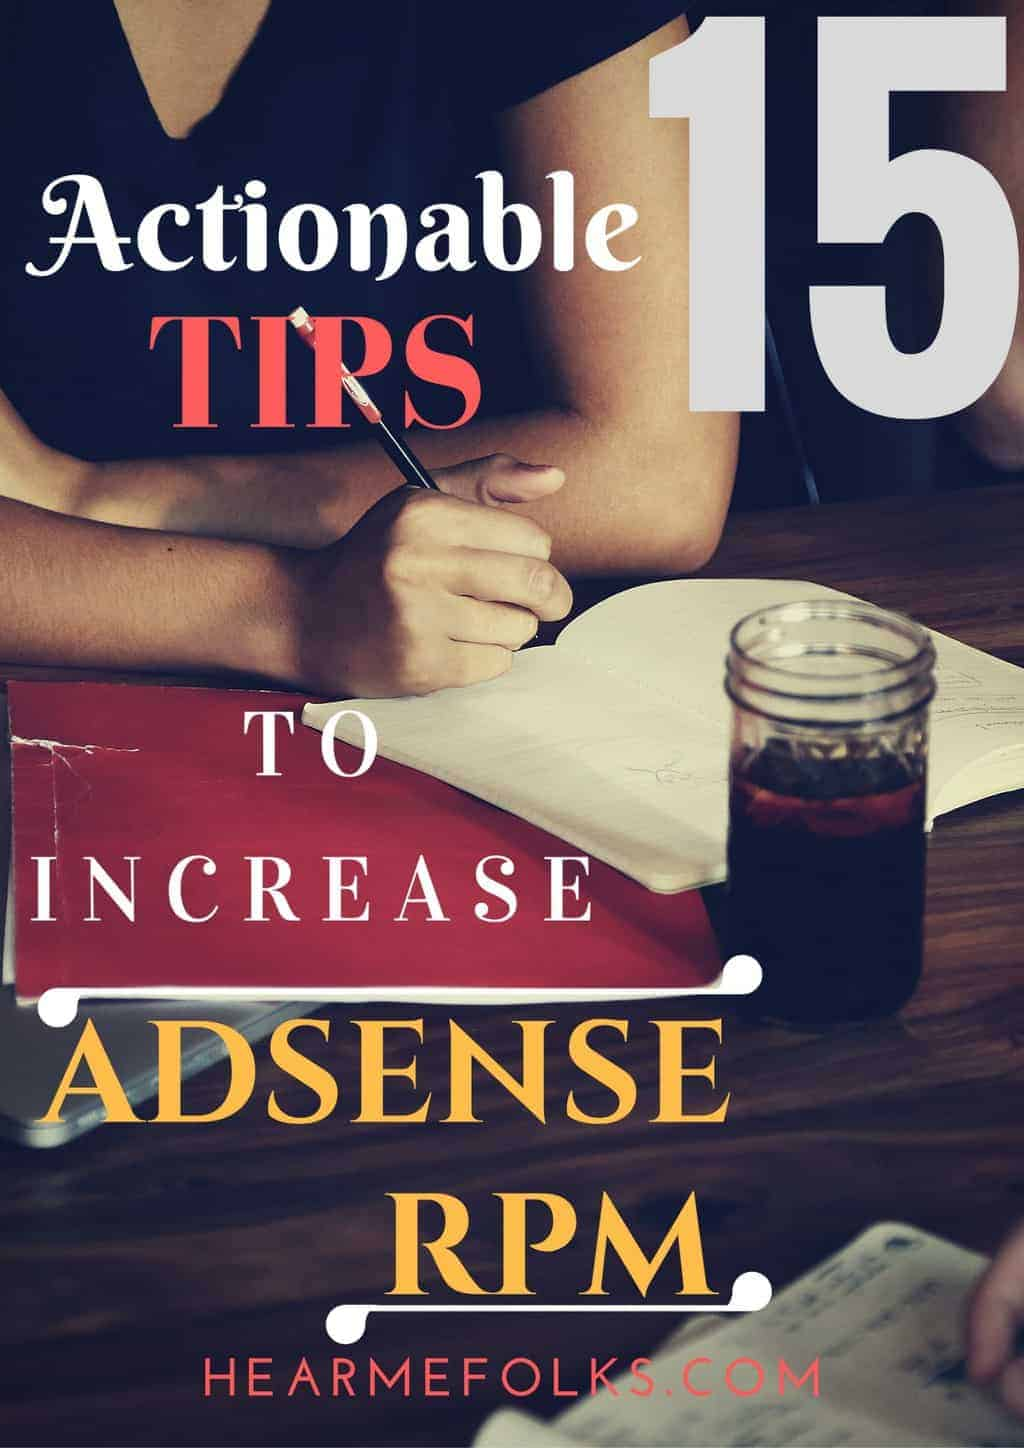 how to increase adsense rpm and revenue